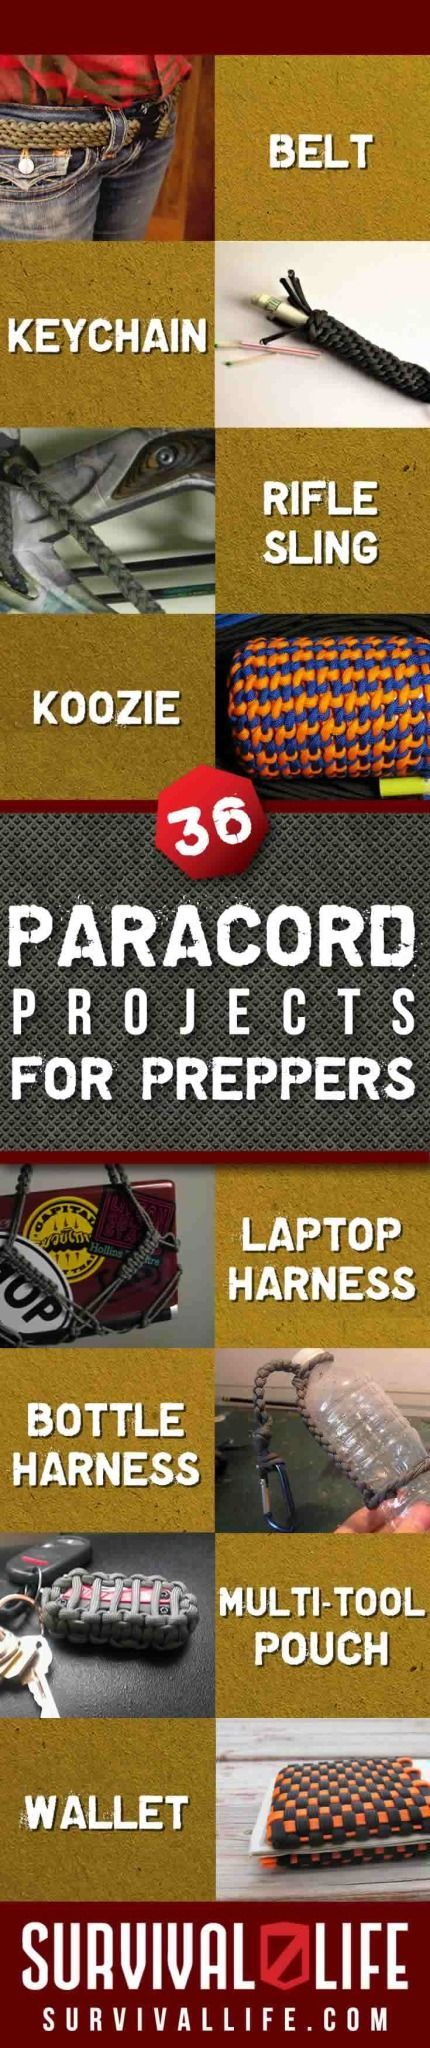 36 Paracord Projects for Preppers | DIY Prepping Ideas by Survival Life